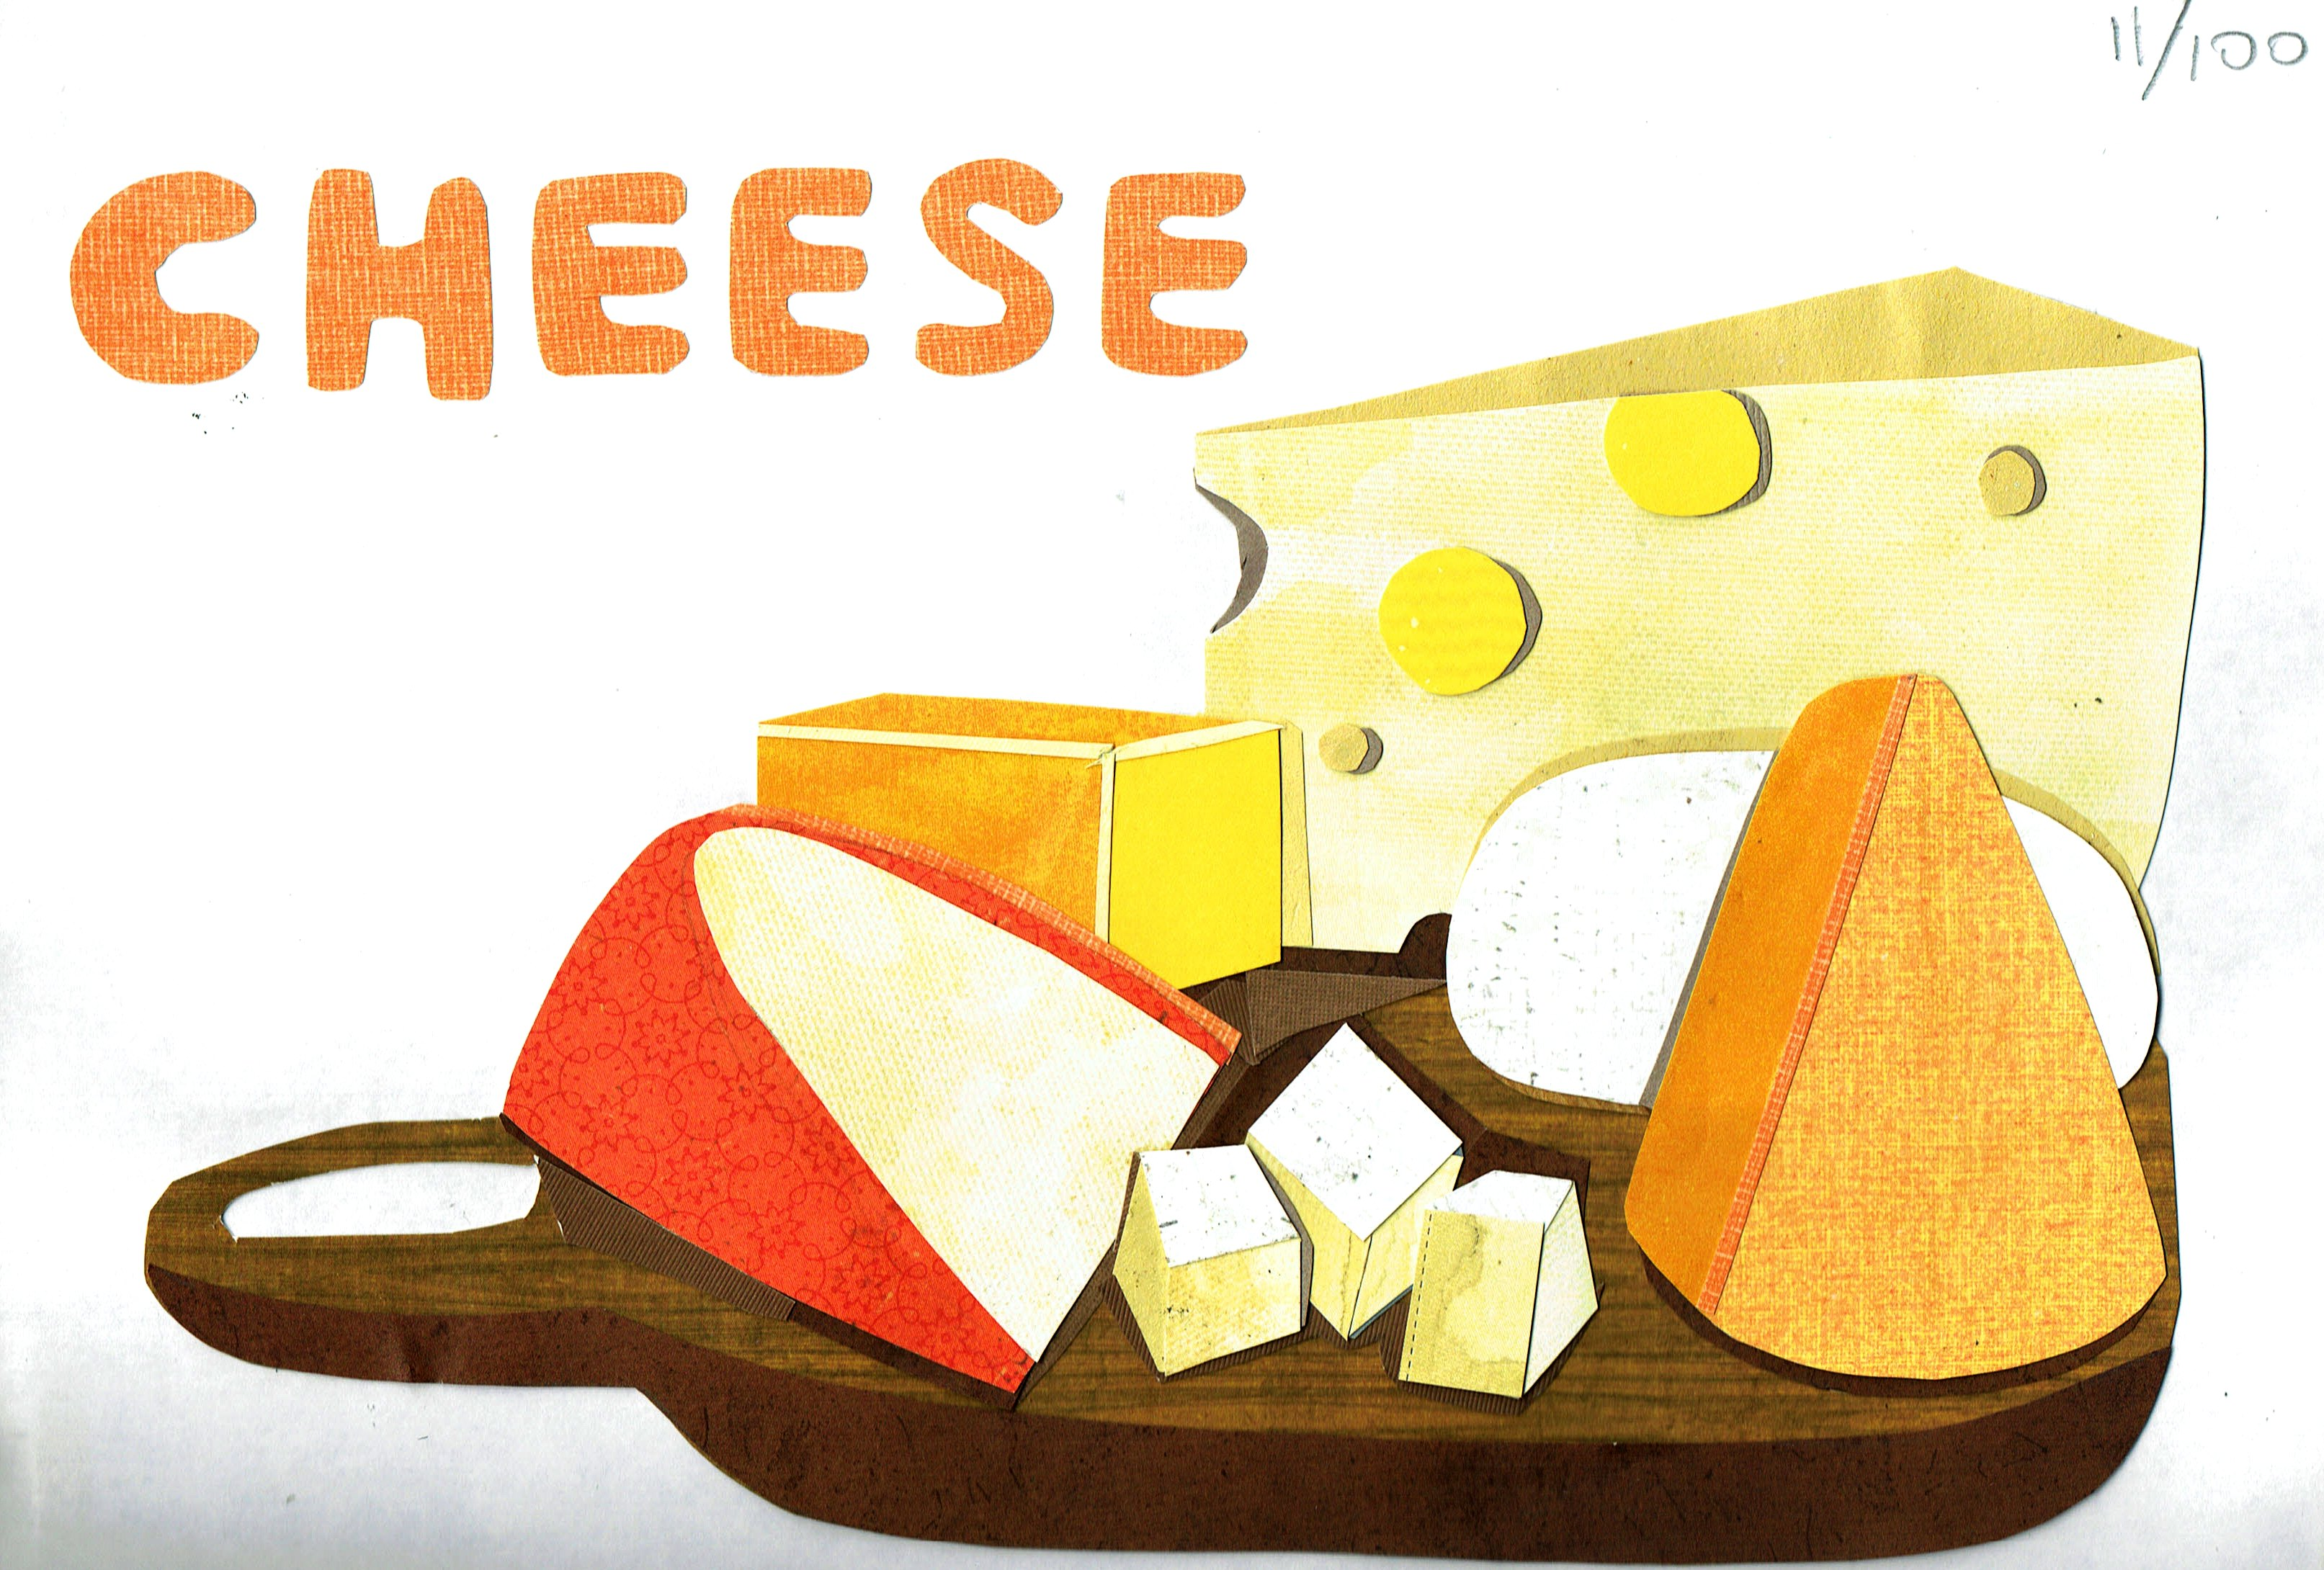 Day 11 - Cheese